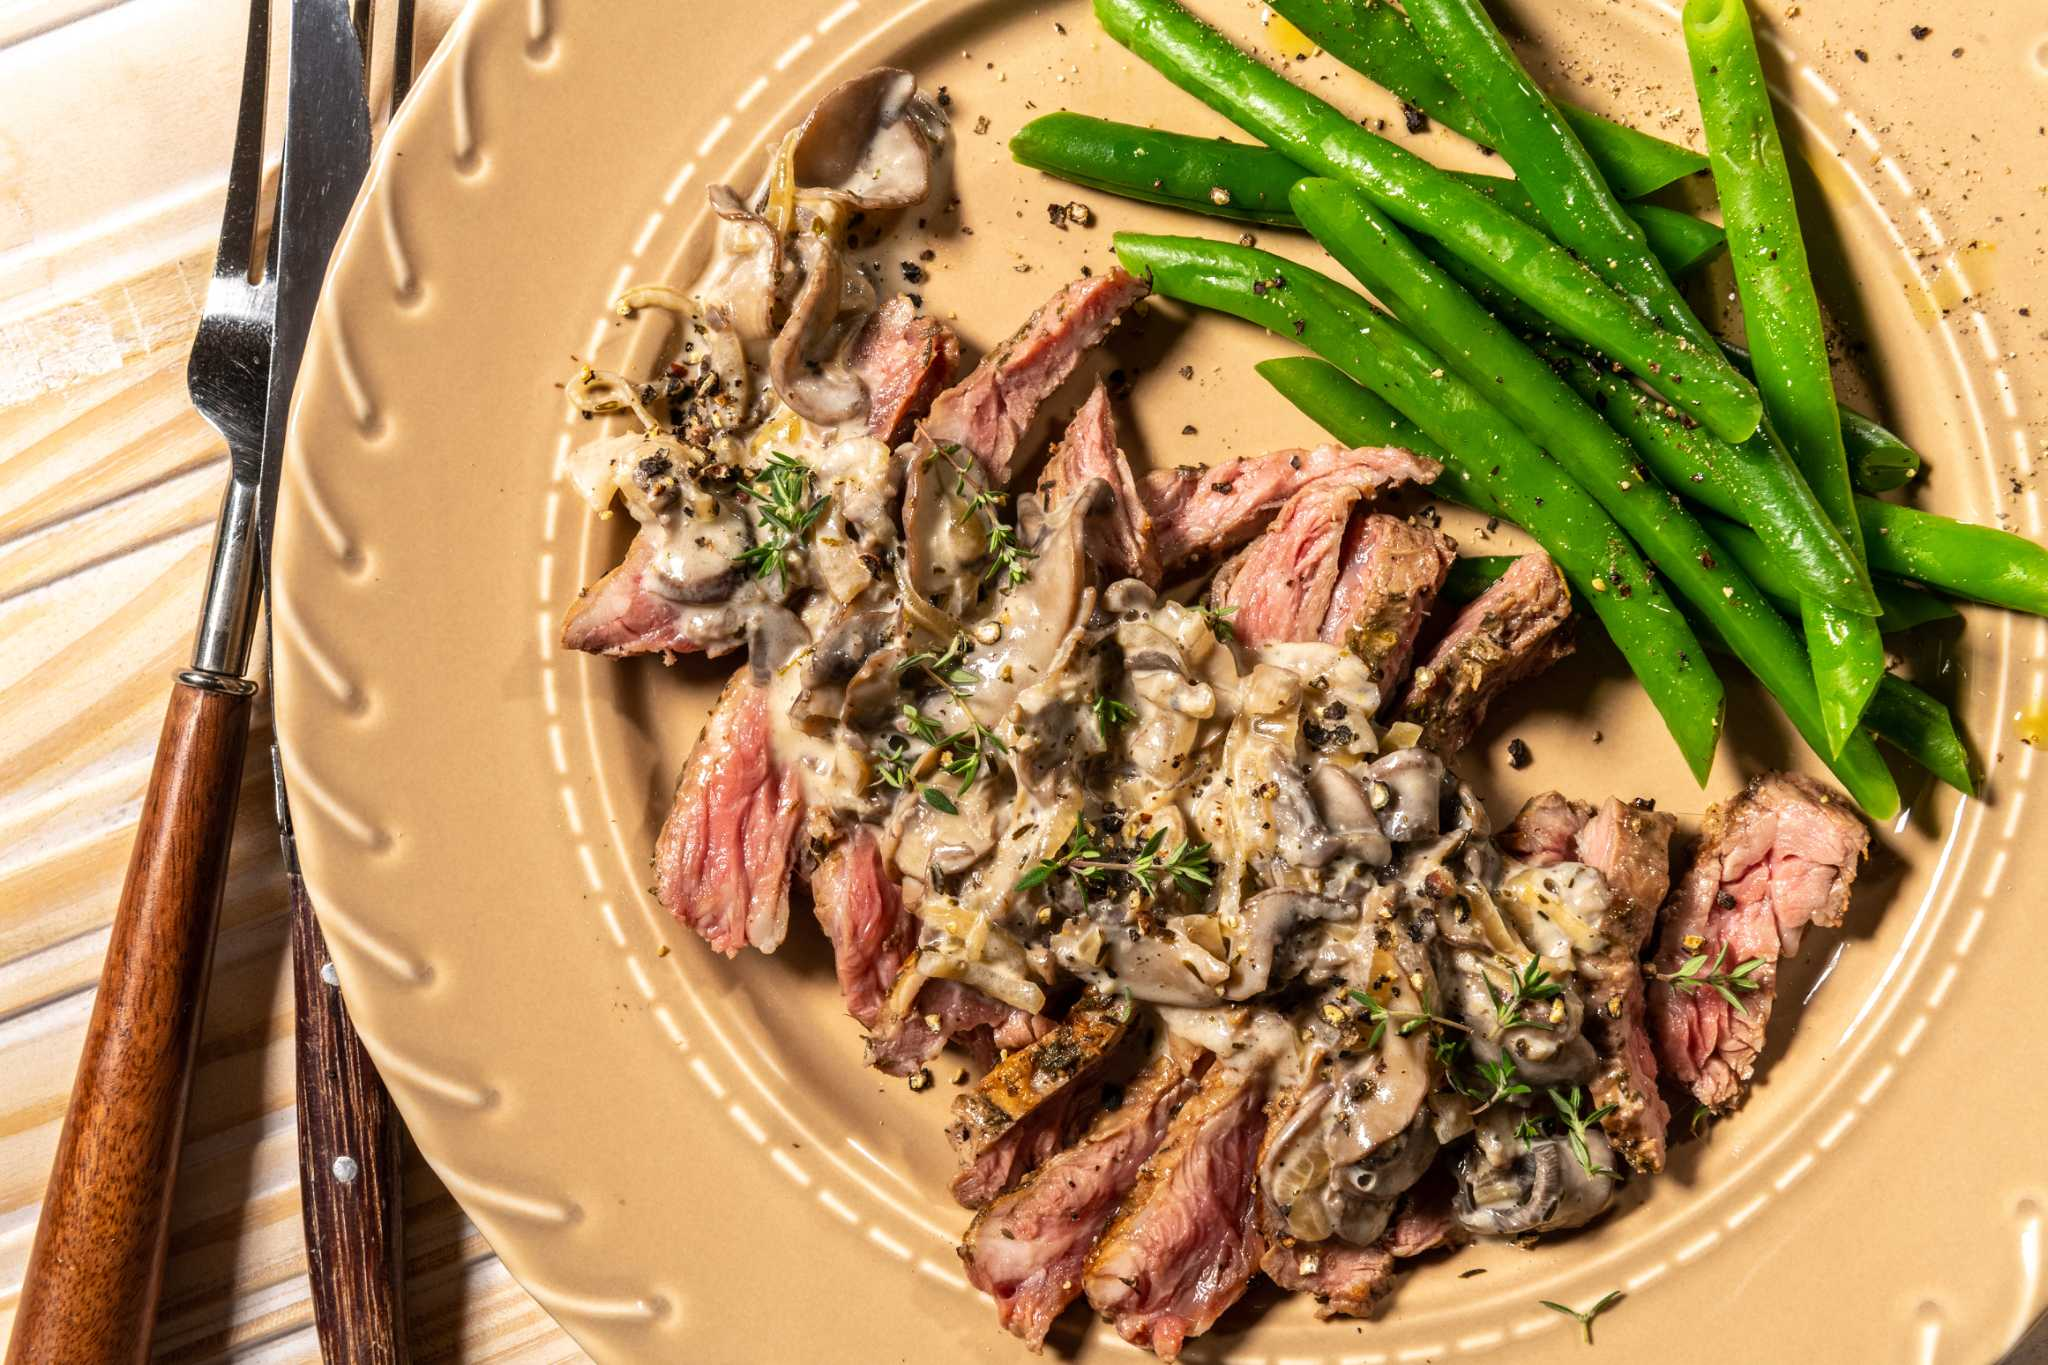 A creamy mushroom sauce makes this skirt steak recipe worth slowing down to savor